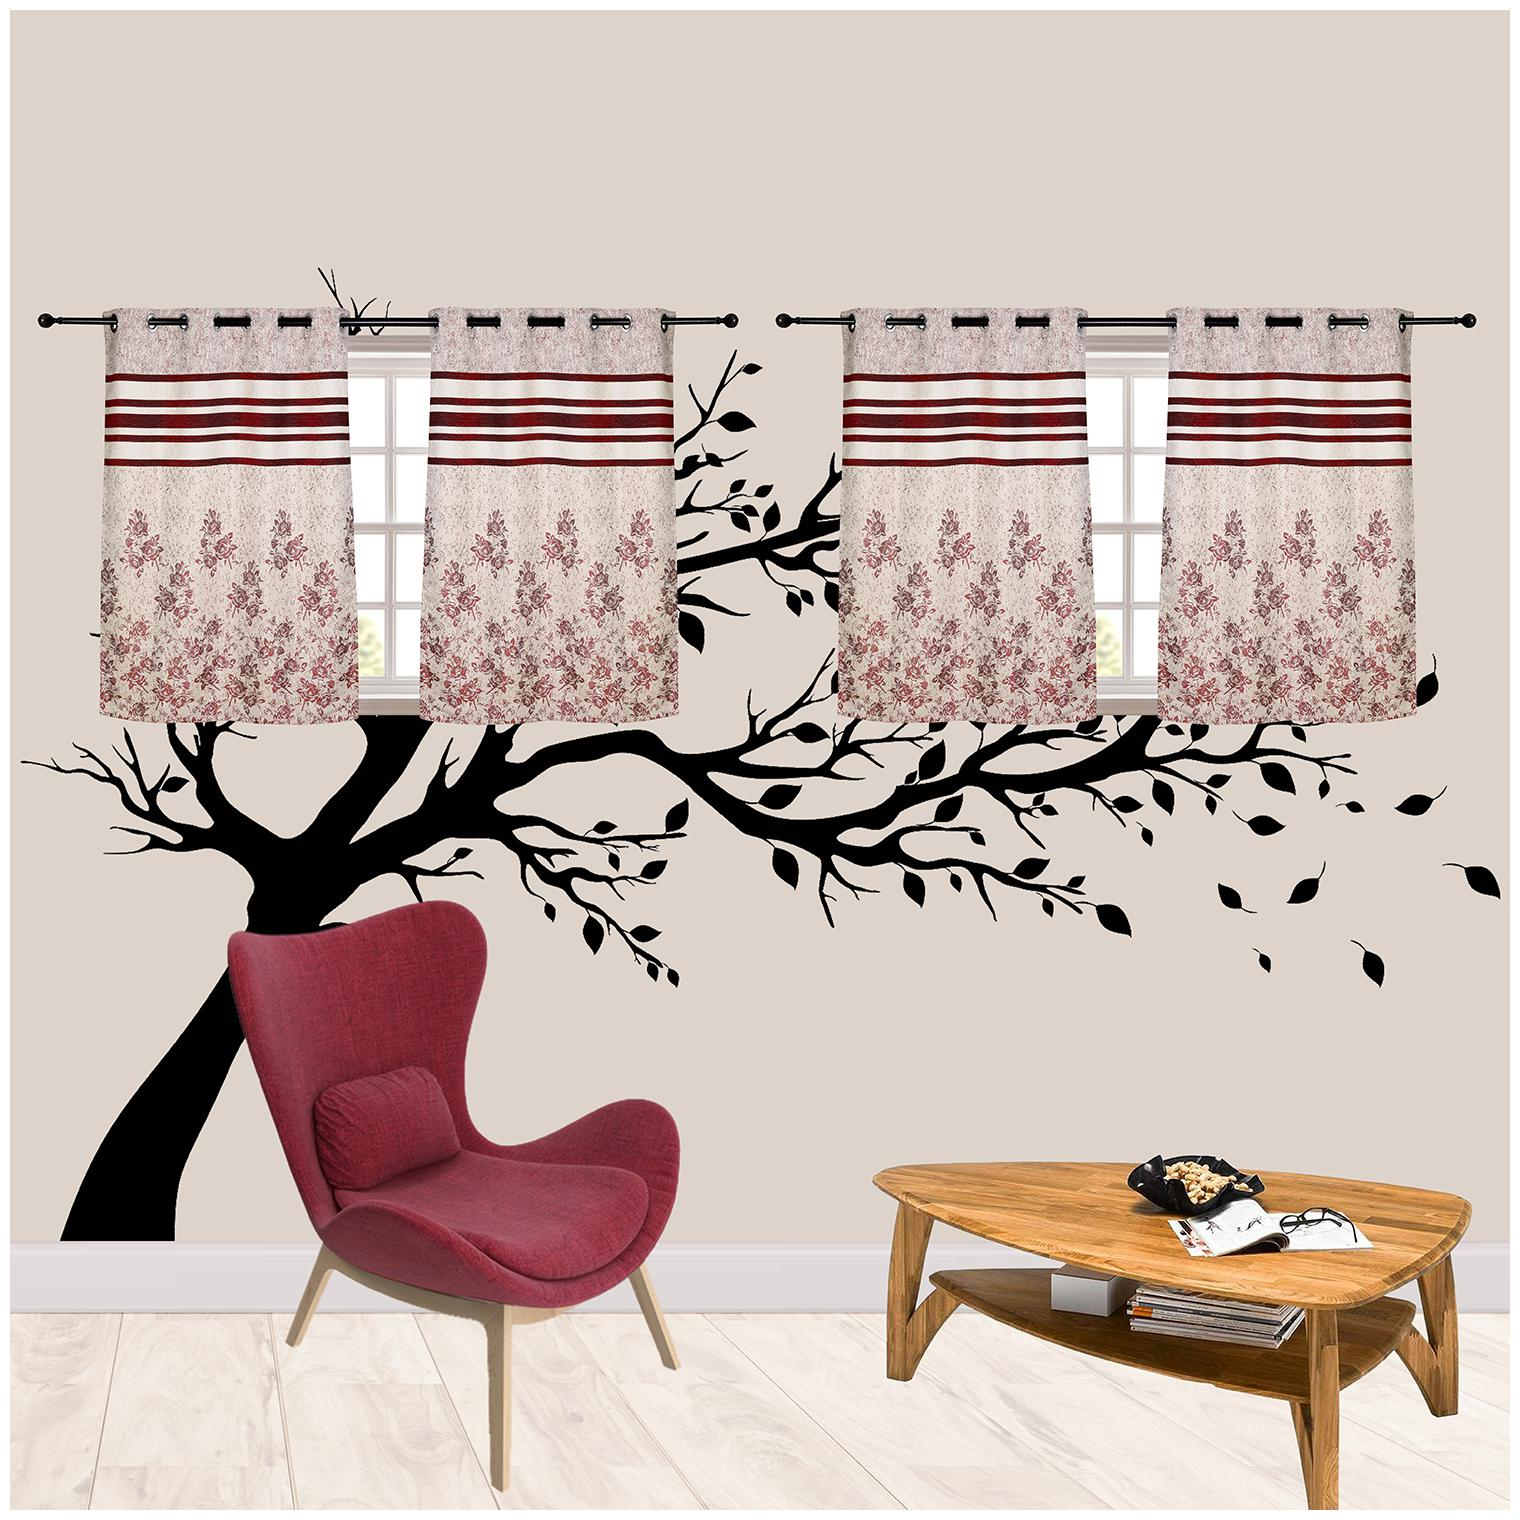 R S Furnishing Polyester Window Blackout Maroon & White Regular Curtain (...